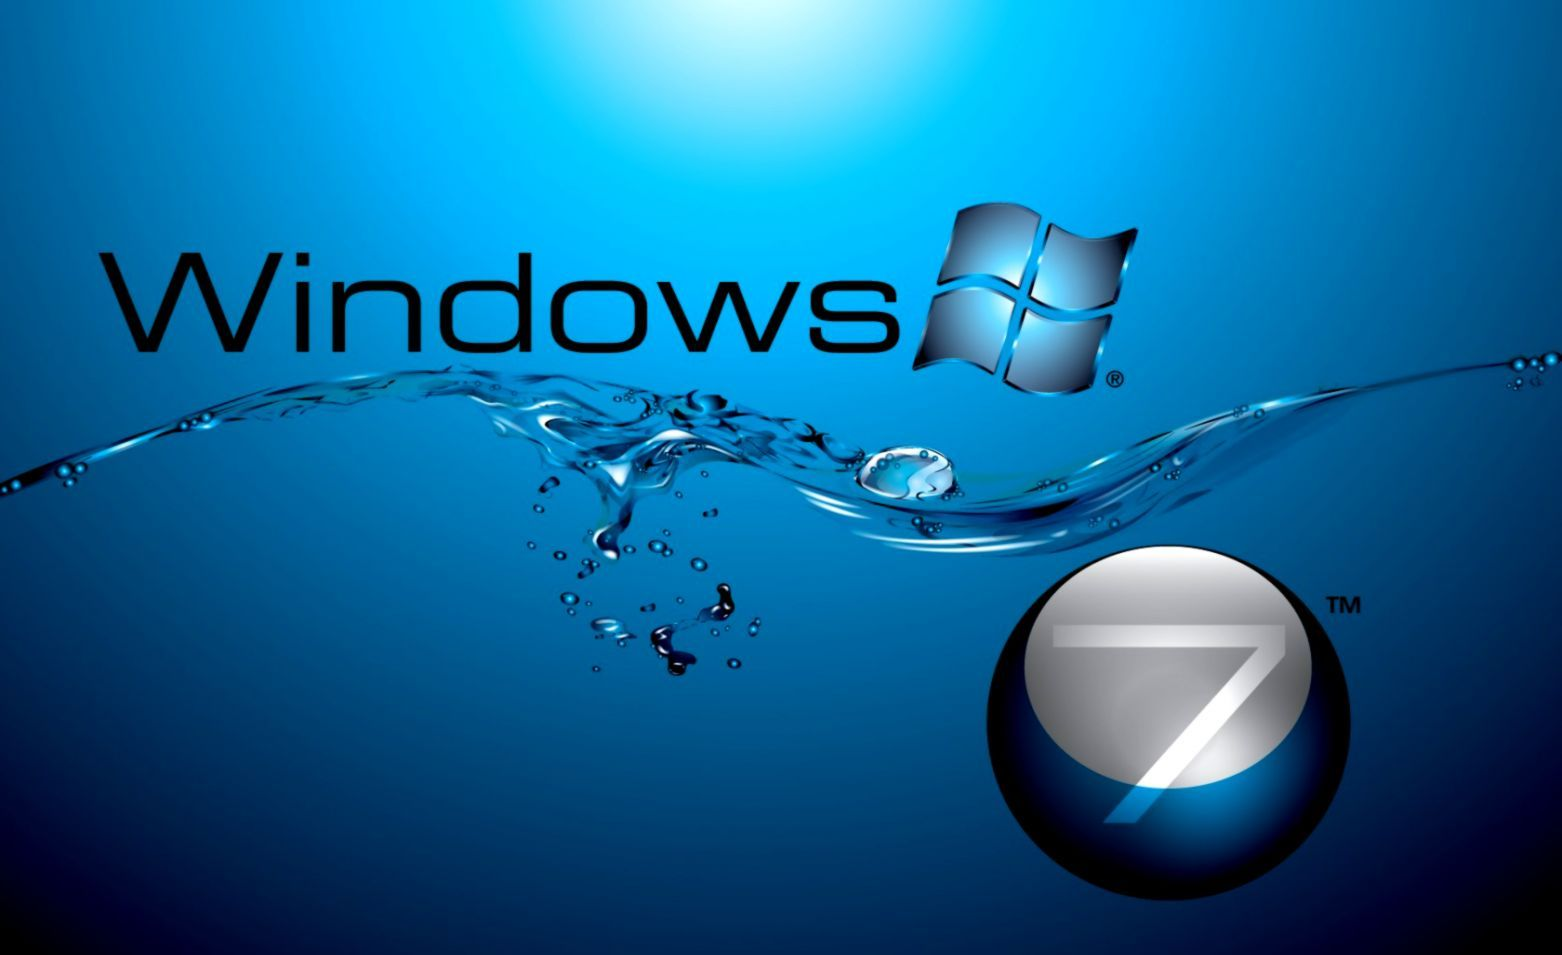 Undefined Windows 8 Wallpapers 1080p 34 Wallpapers Adorable Wallpapers Windows Wallpaper 3d Desktop Wallpaper Android Wallpaper Desktop windows hd wallpapers 1080p